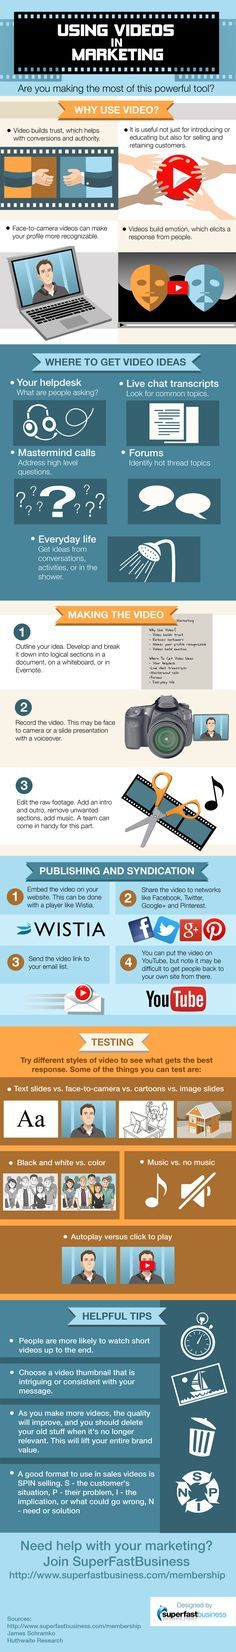 Check this out to see how to use videos in marketing | Quiksnip